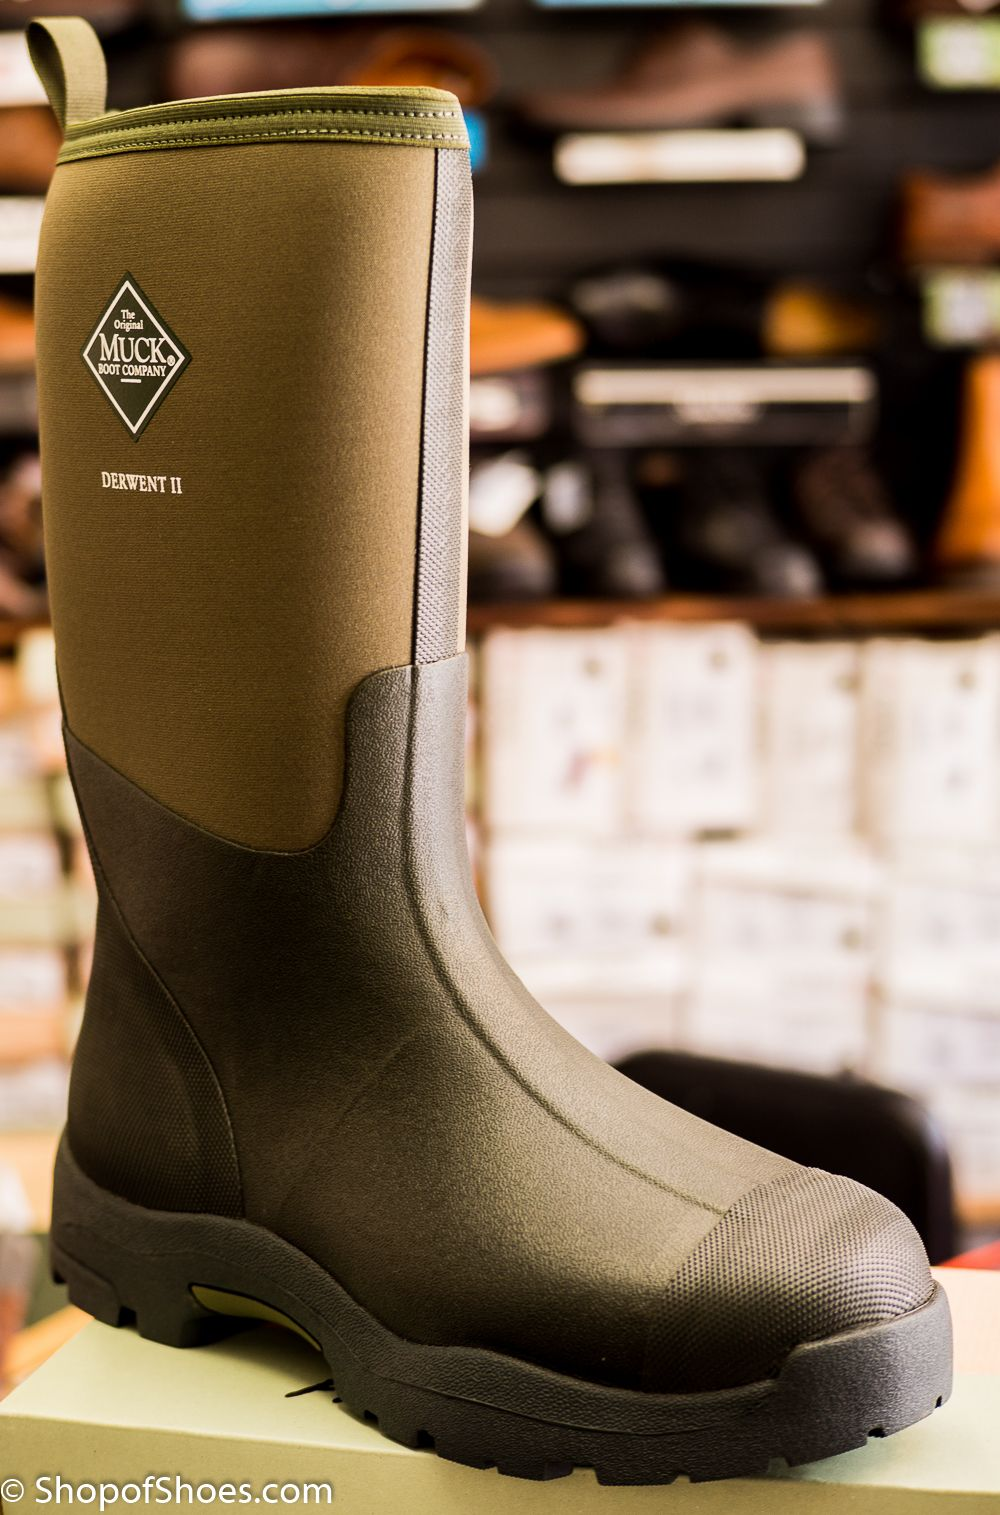 Muck Boots Provide You With Comfort And Warmth In Style